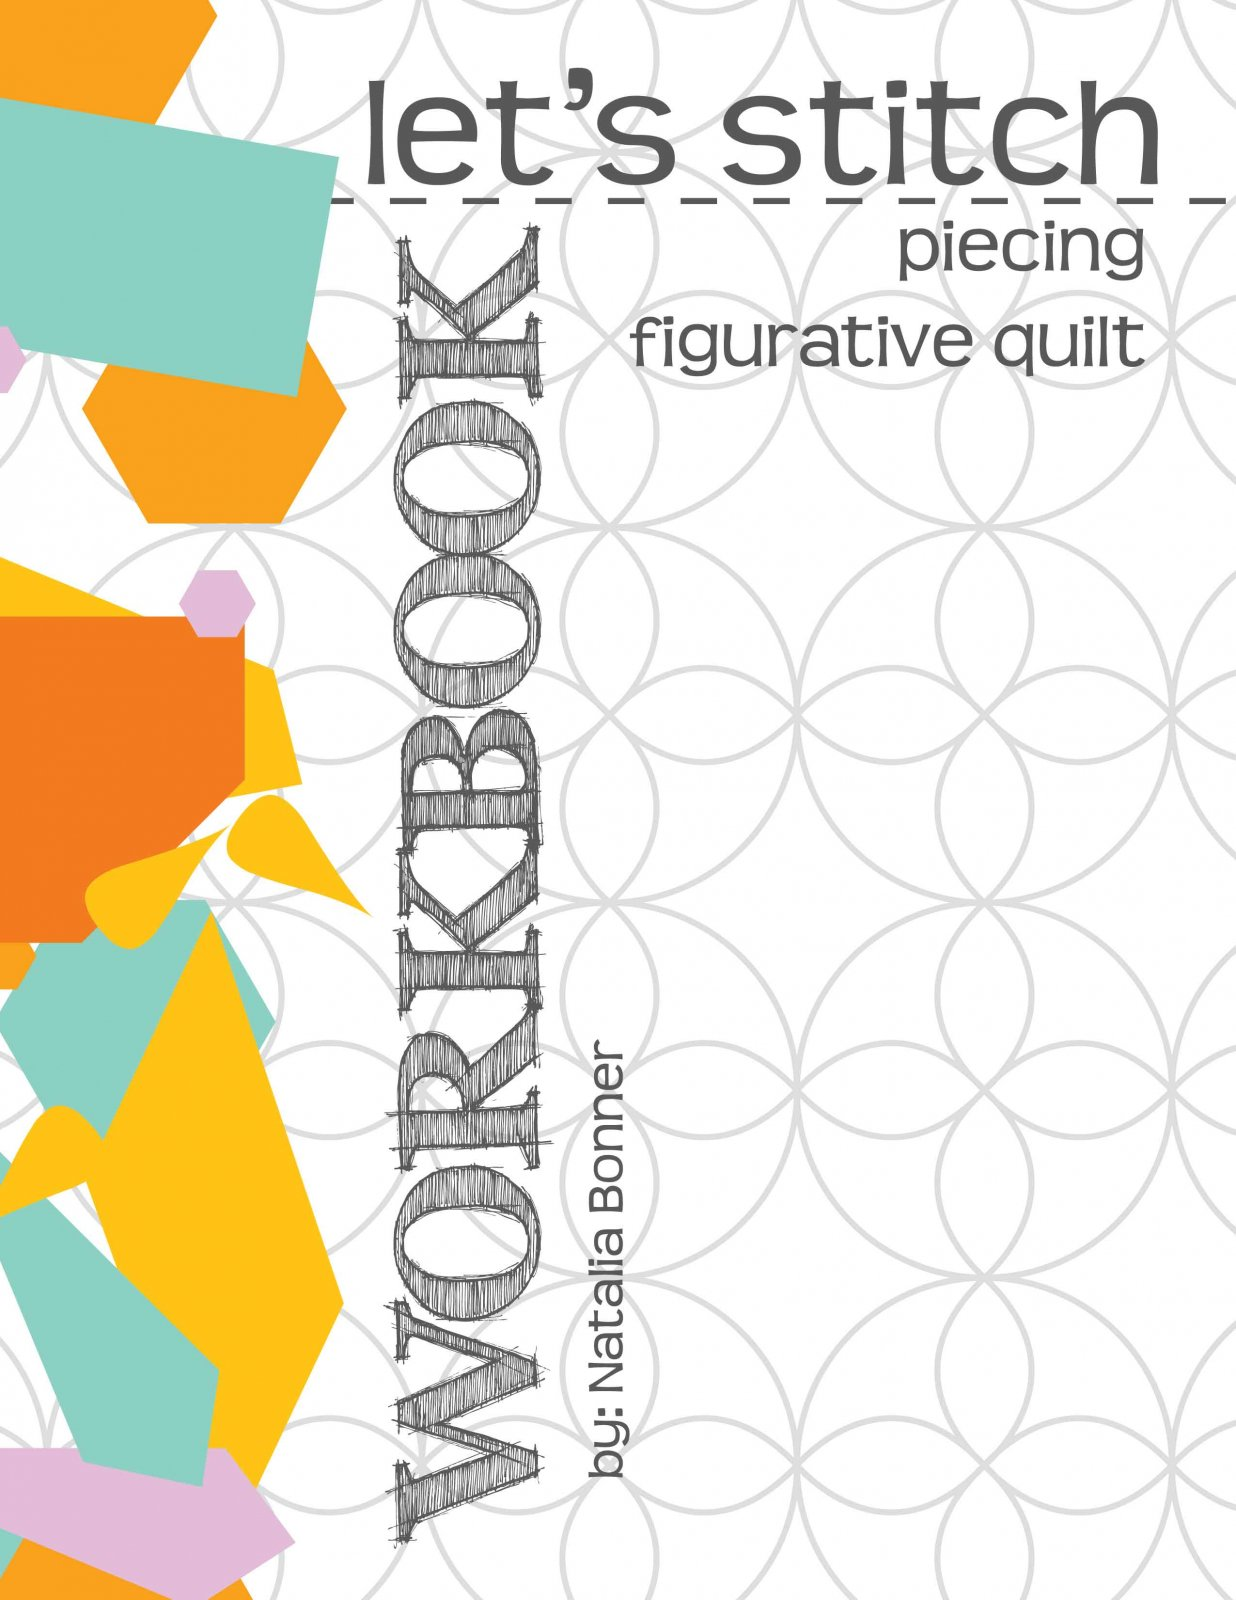 Let's Stitch a Figurative Quilt - Piecing Workbook